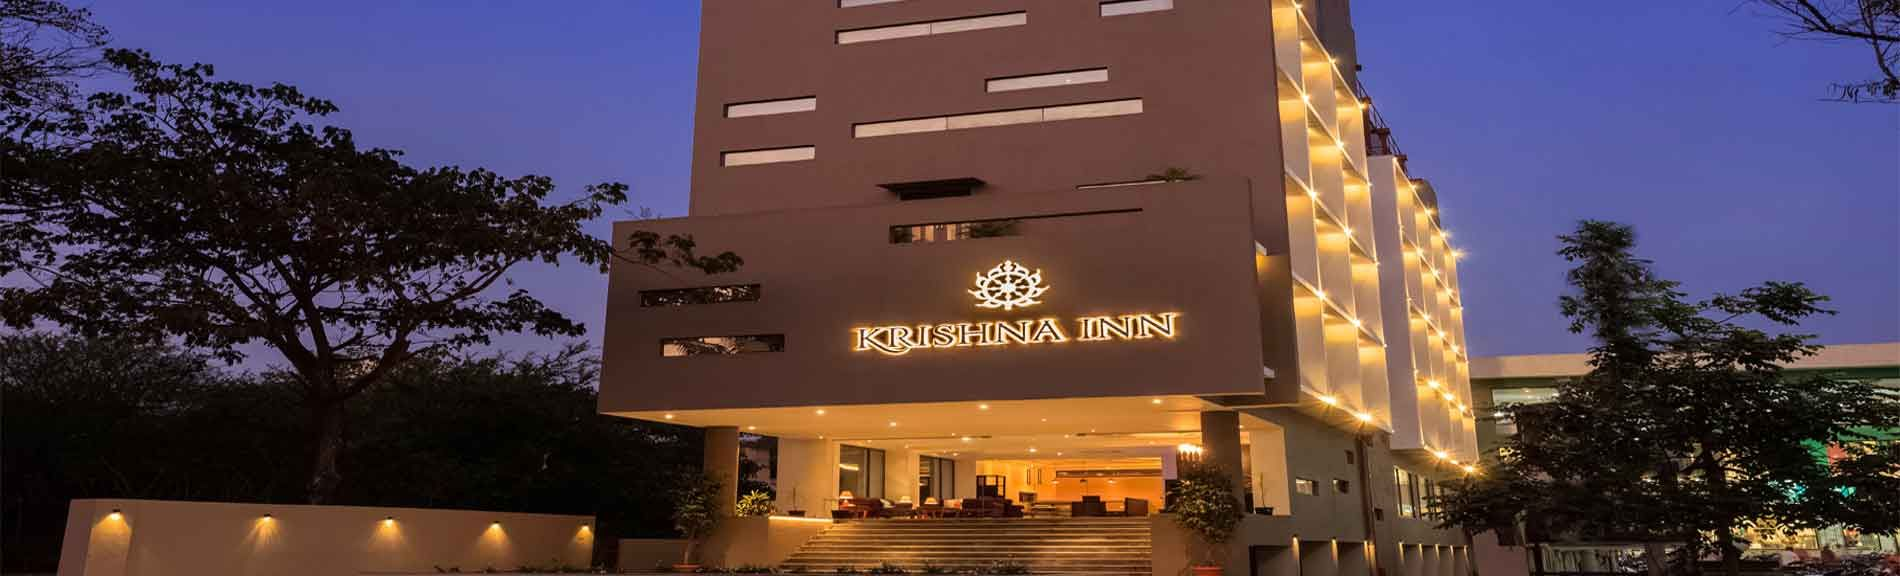 Staying In A Hotel Near The Guruvayur Temple Is Ideal For Visit Krishna Inn Located Very Close Manjulal Of